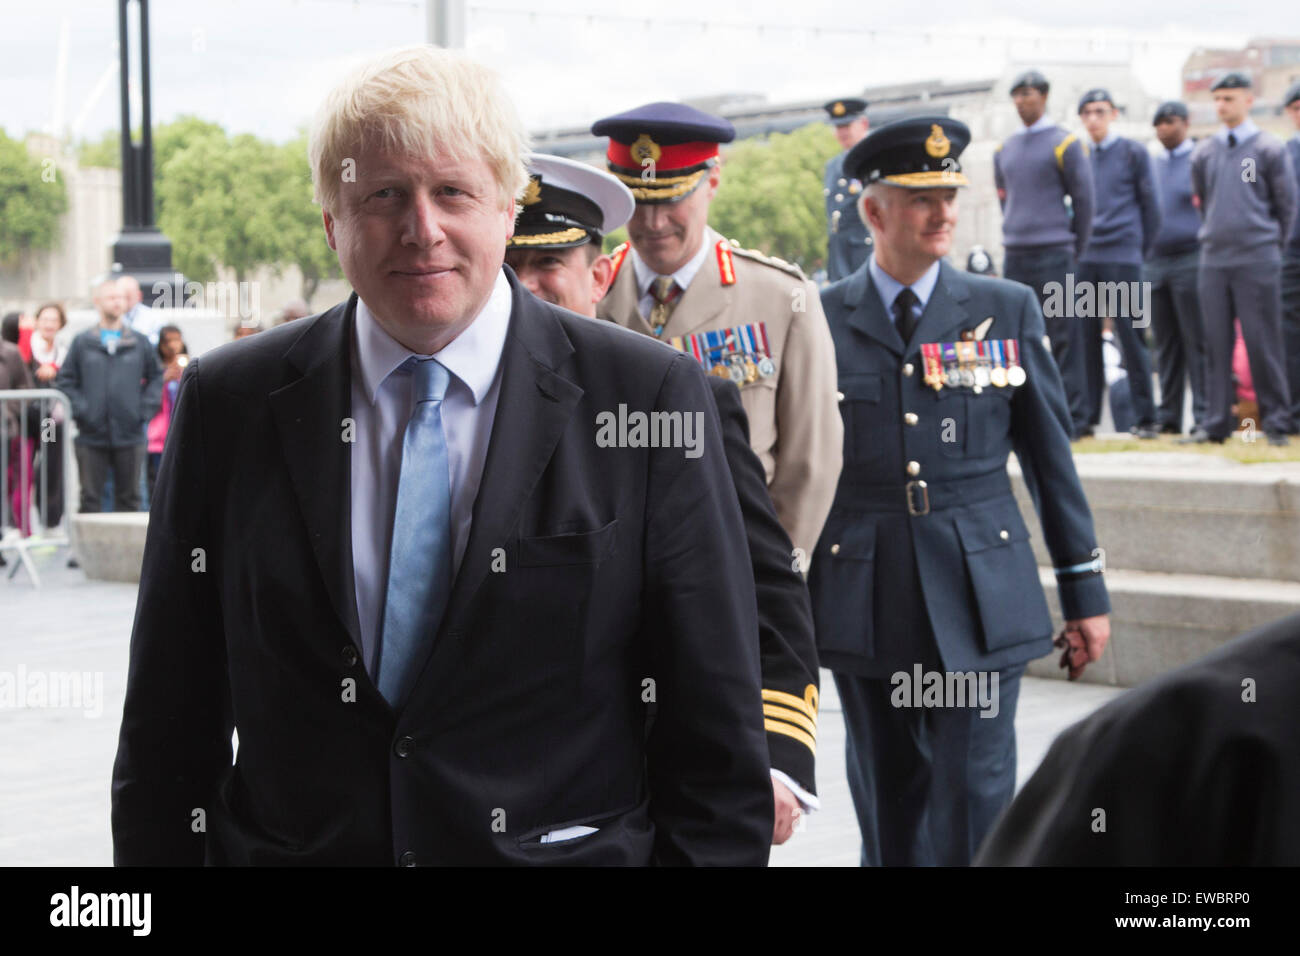 London, UK. 22 June 2015. Pictured: Boris Johnson with senior military officers. Boris Johnson, the Mayor of London, - Stock Image